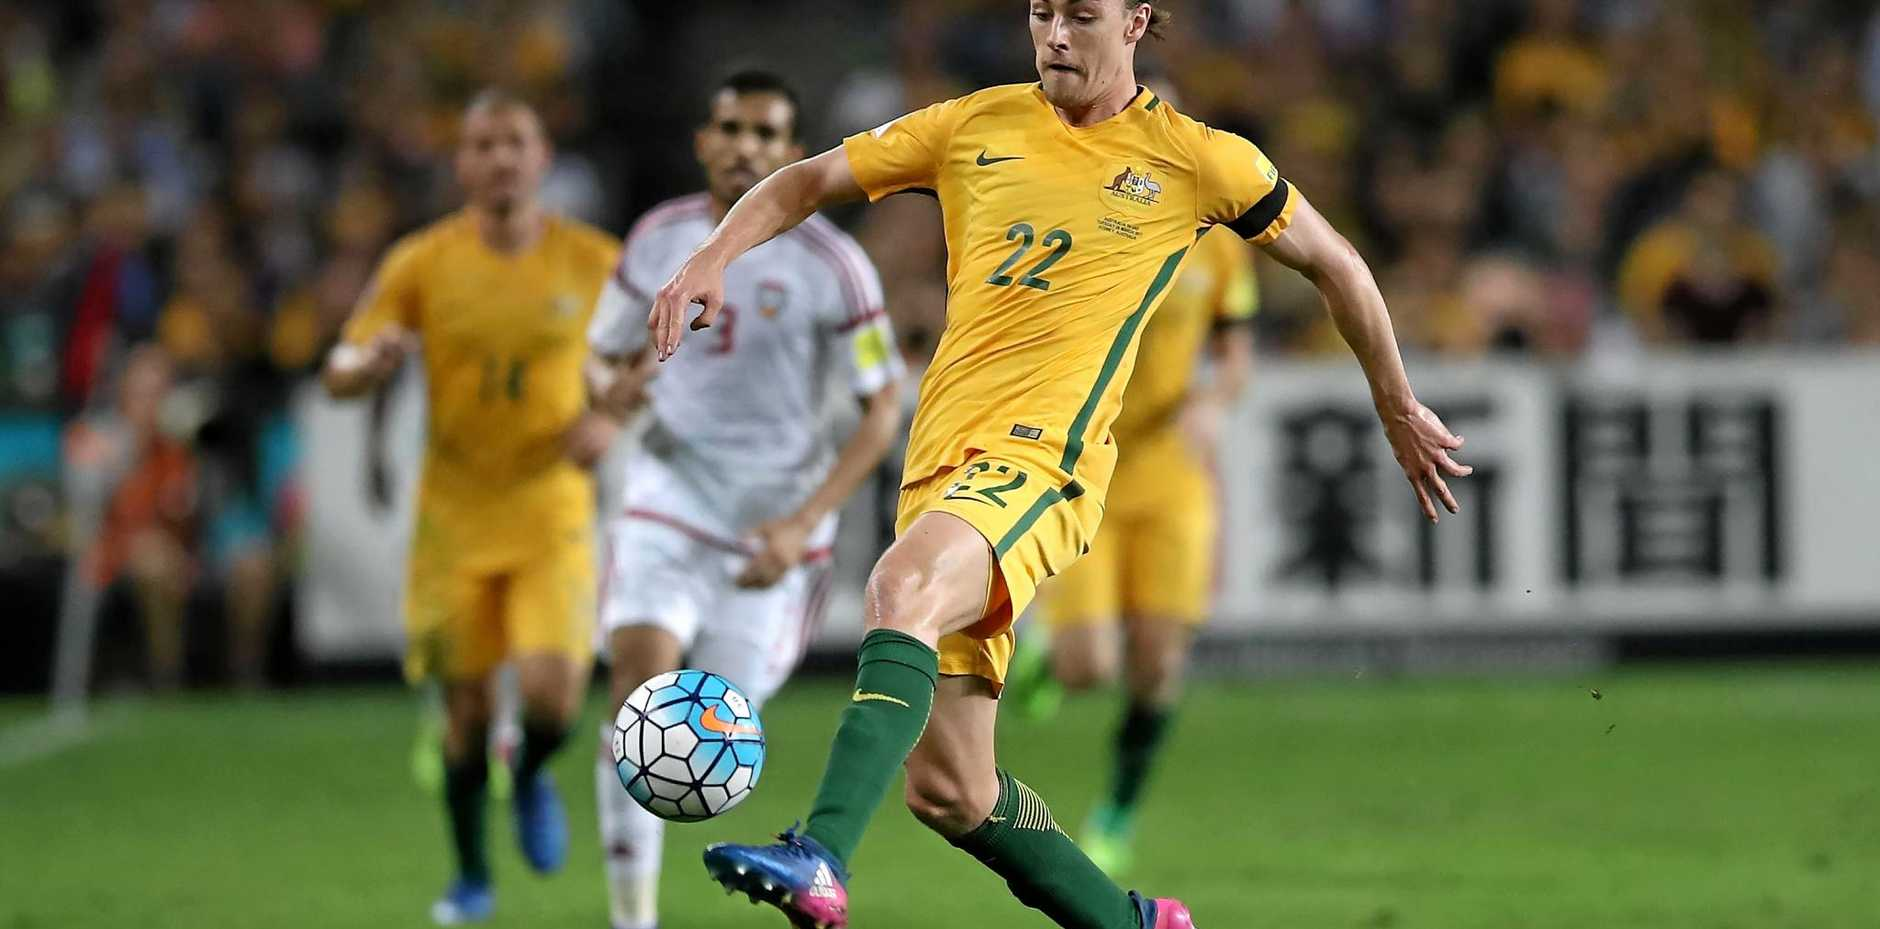 Jackson Irvine playing for the Socceroos in the World Cup qualifier against the United Arab Emirates at Allianz Stadium in March.